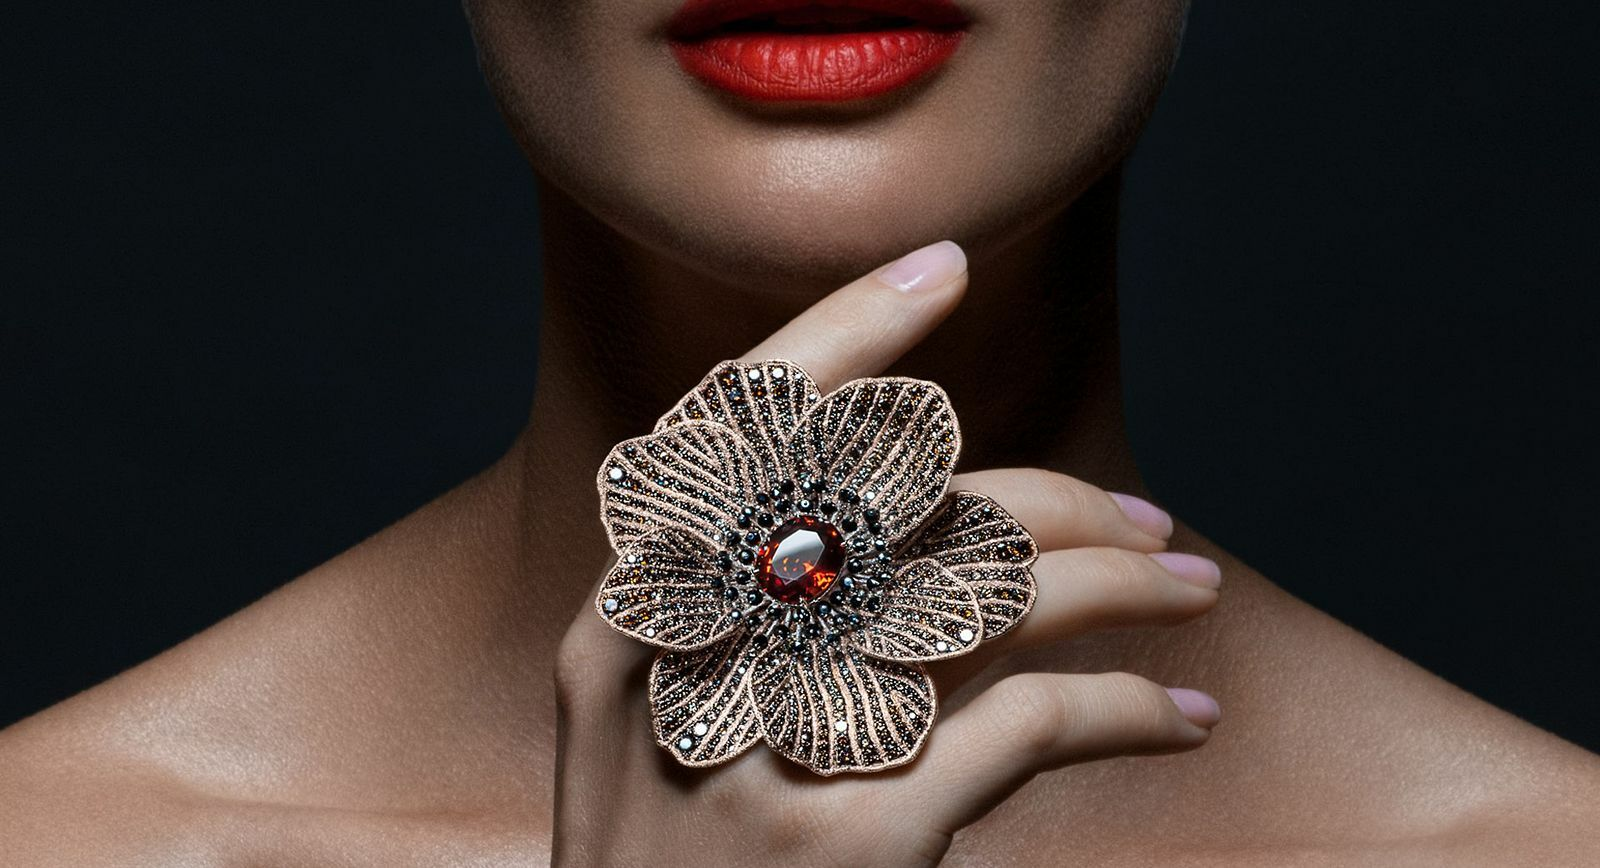 Alex Soldier: The Beauty Of My Jewellery Lies In Merging Fine Ornaments With Miniature Sculpture